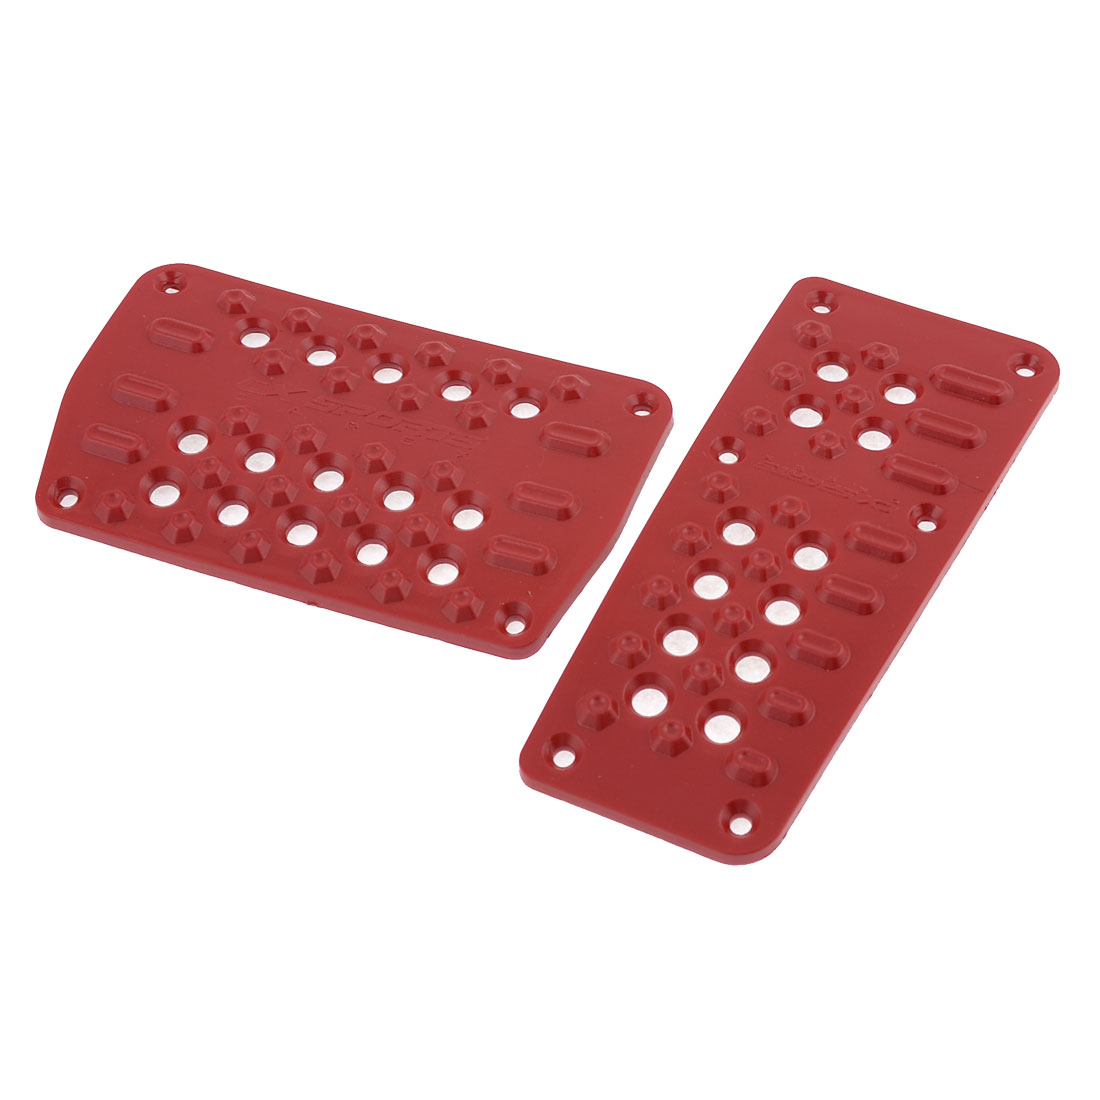 Red Non-Slip Universal Car Vehicle Gas Pedal Brake Pad Covers Set